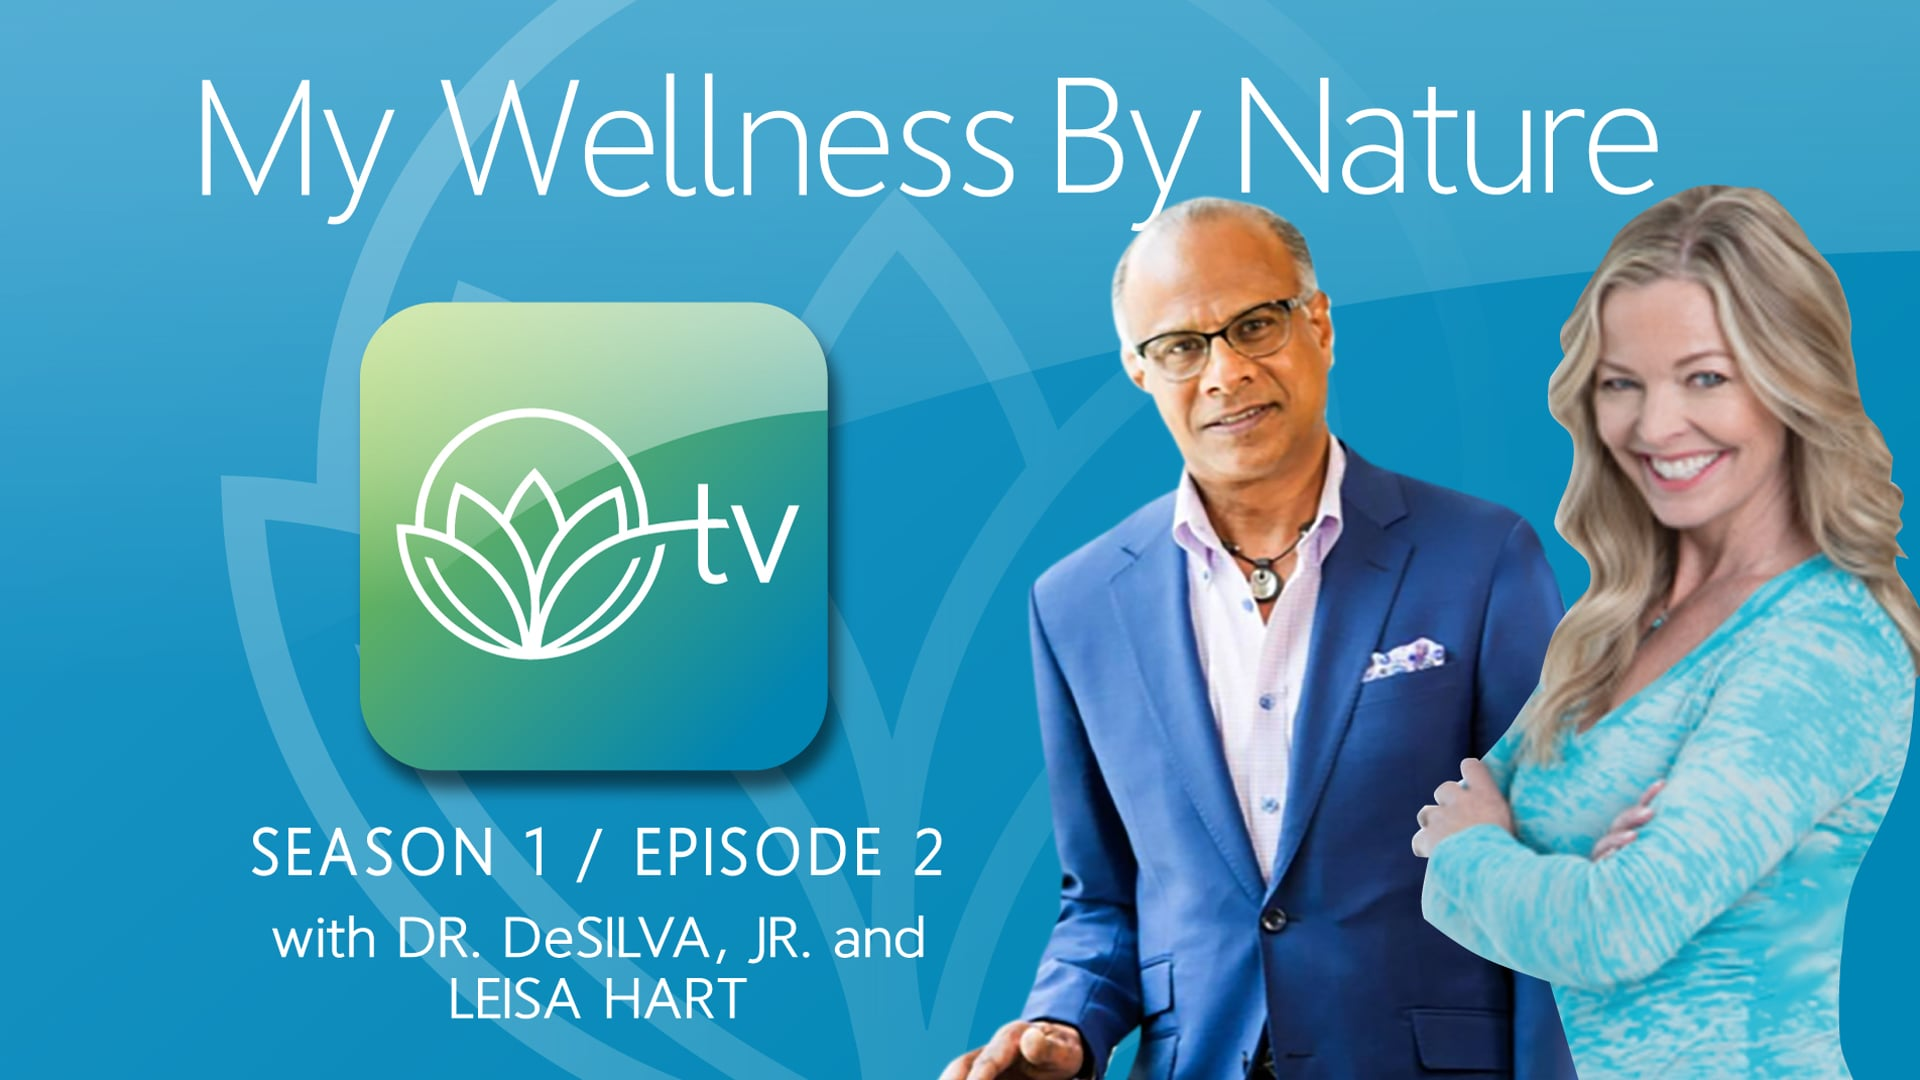 My Wellness by Nature TV Show Season 1 / Episode 2